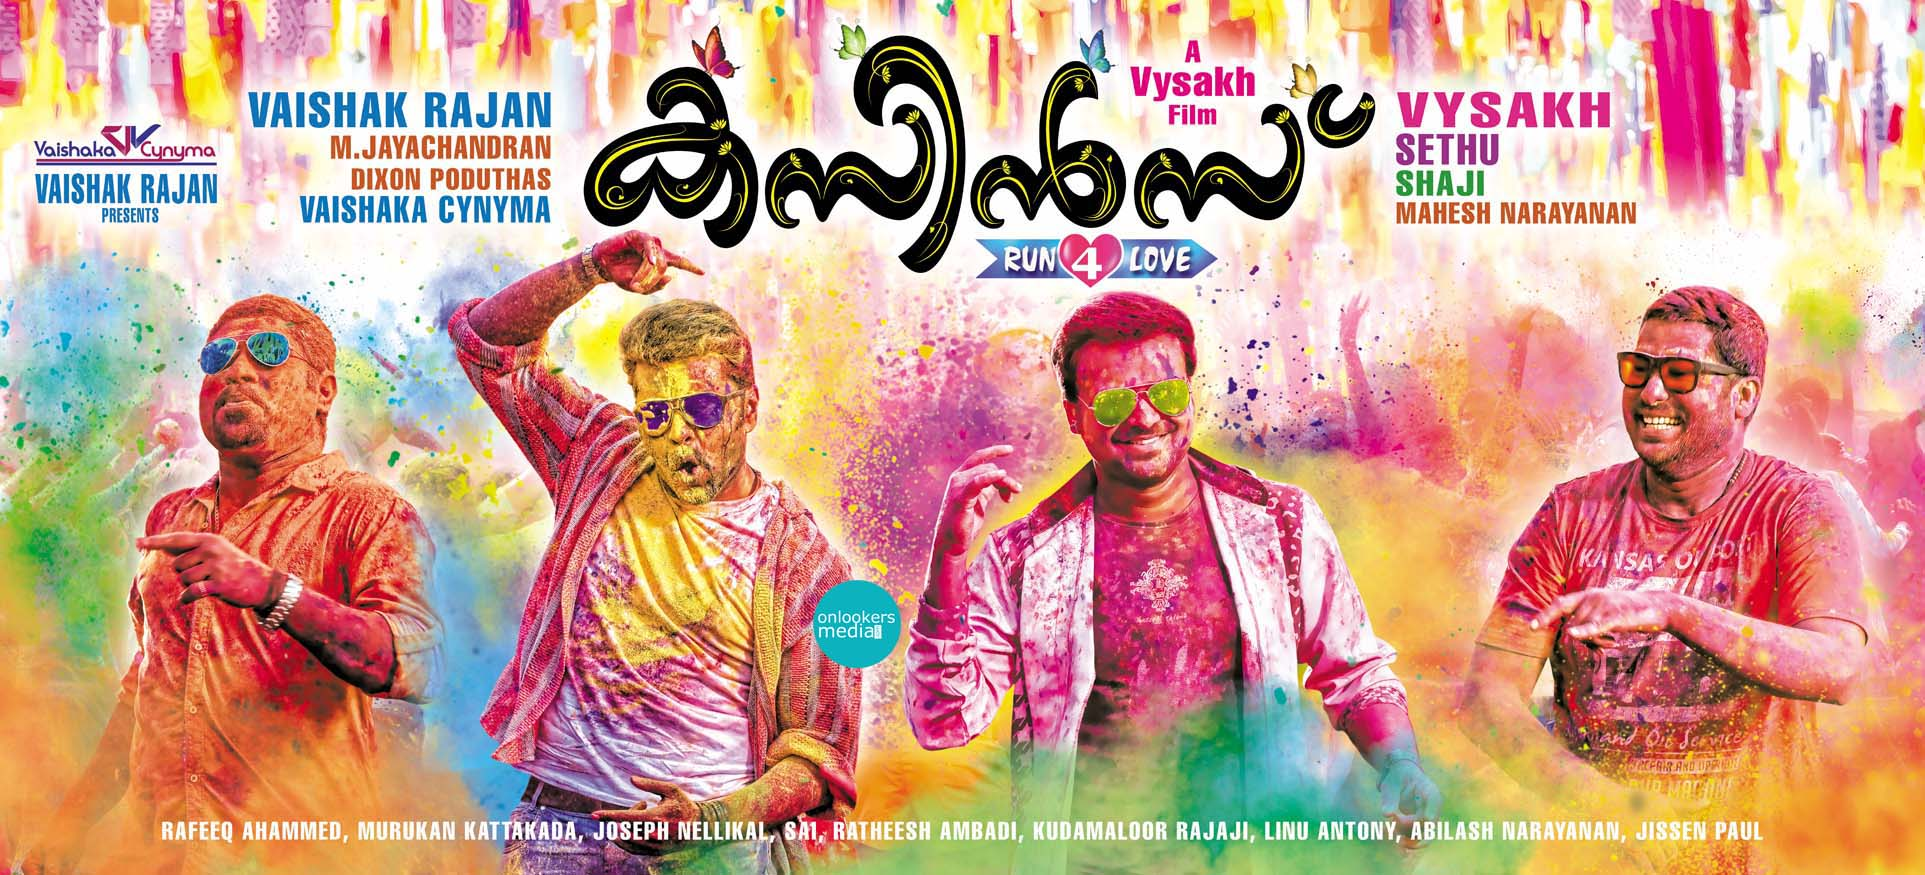 http://onlookersmedia.in/wp-content/uploads/2014/12/Cousins-Posters-Stills-Images-Review-Report-Collection-Kunchacko-Boban-Indrajith-Nisha-Agarwal-Vedhika-Miya-Onlookers-Media-20.jpg